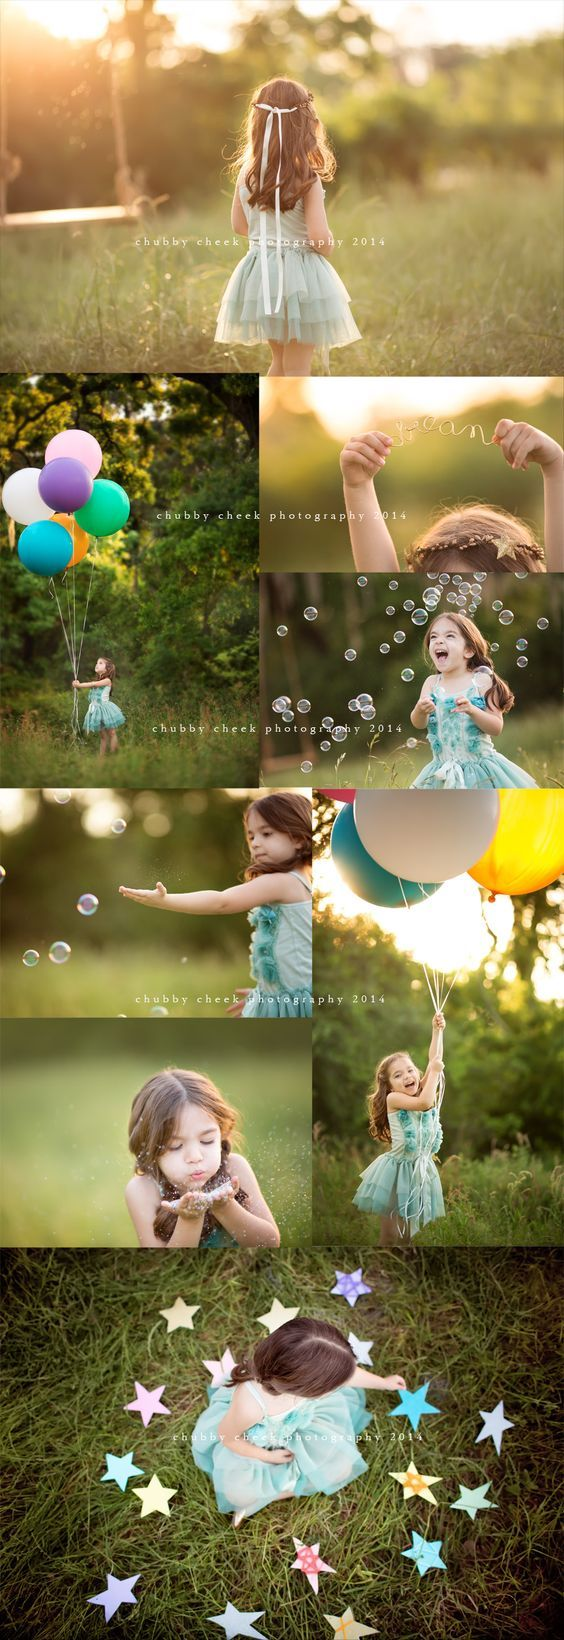 Chubby Cheek Photography brings us a session filled with imagination, dreams and more…